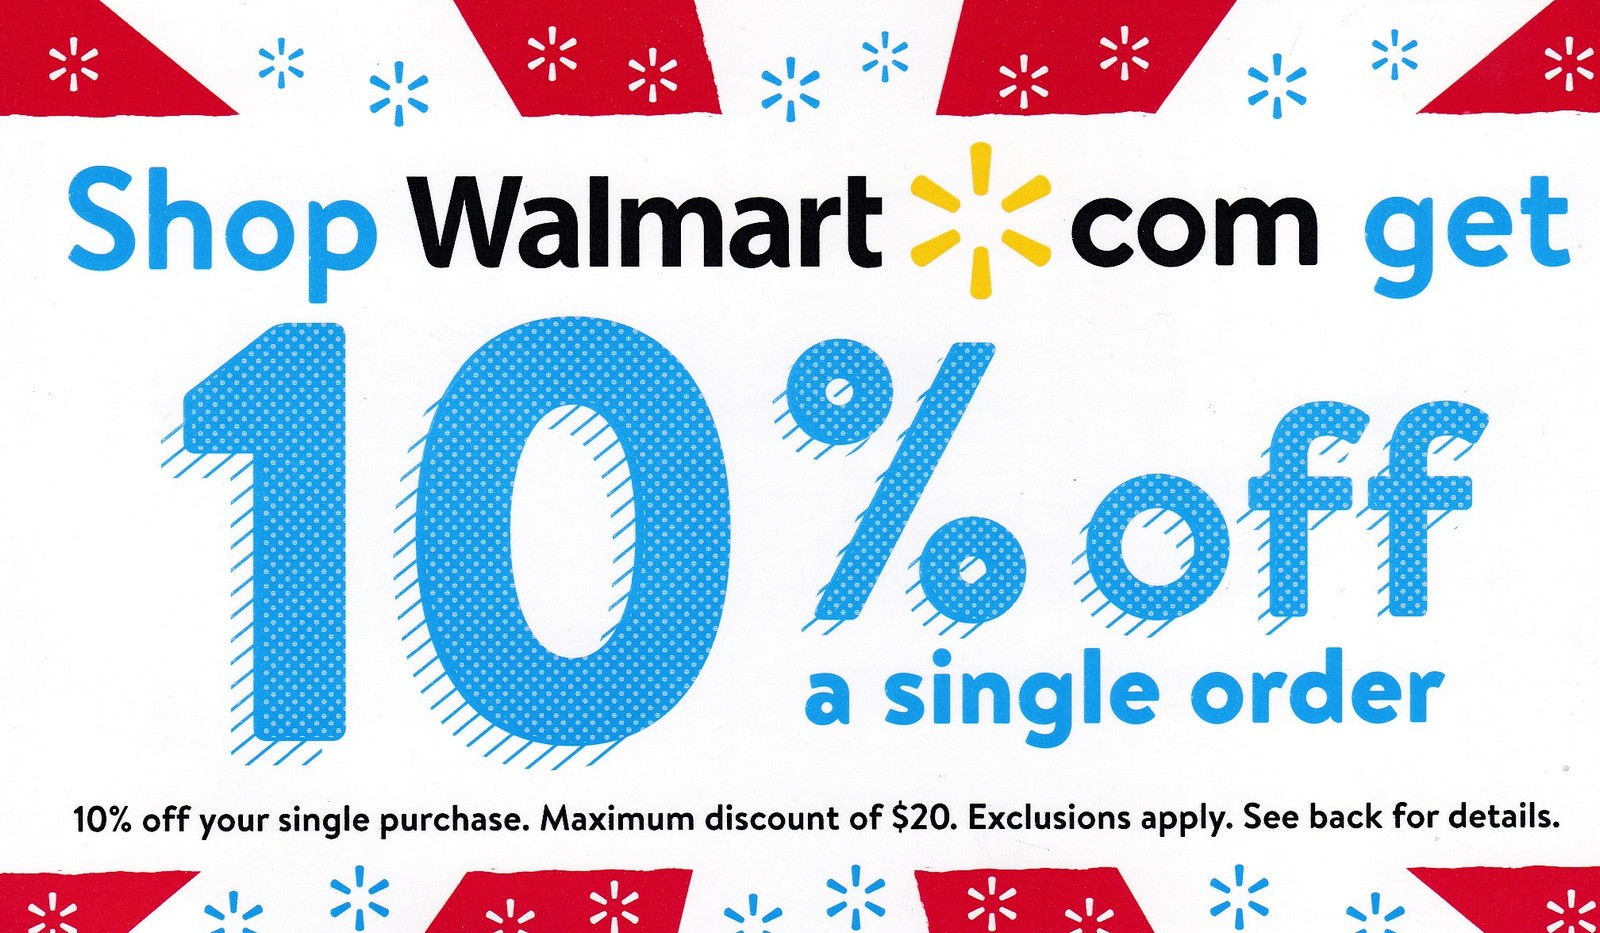 It's Back! 10% Off Walmart Coupons Are Available Again